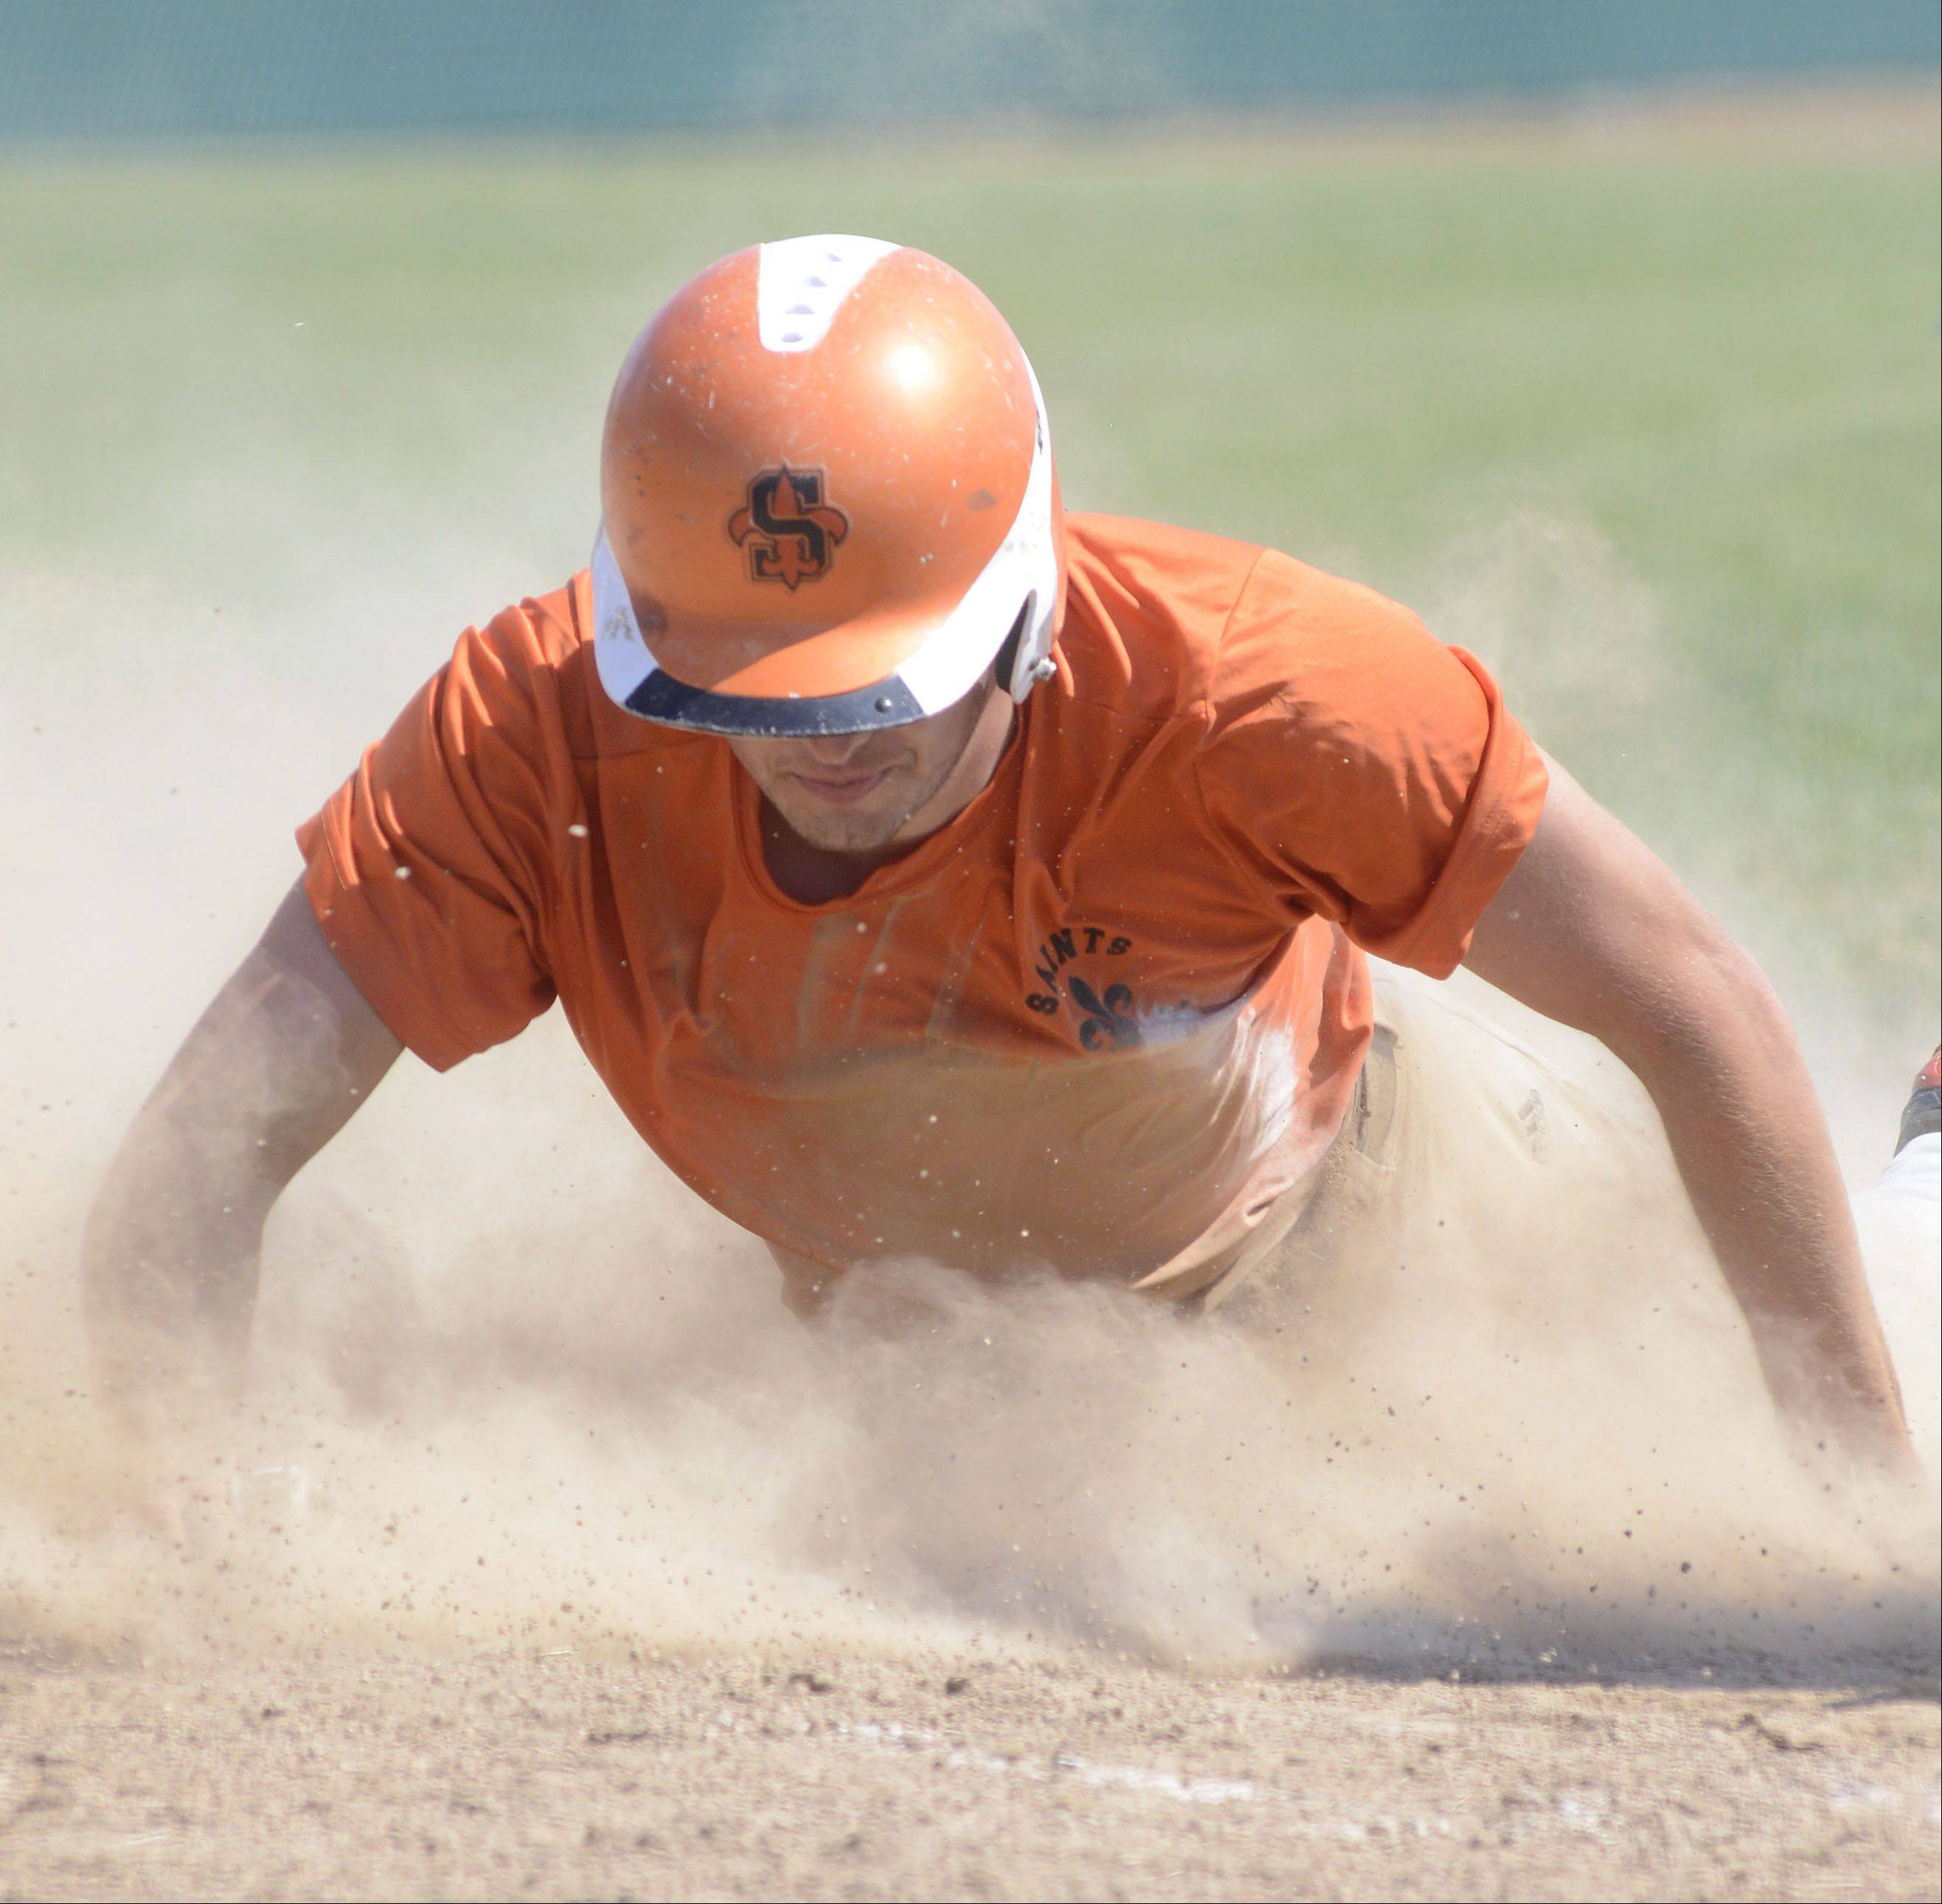 St. Charles East's Alex Abate slides face-first into home plate in the third inning to score the first run in the tournament semifinals vs. St. Charles North's on Wednesday, July 17.